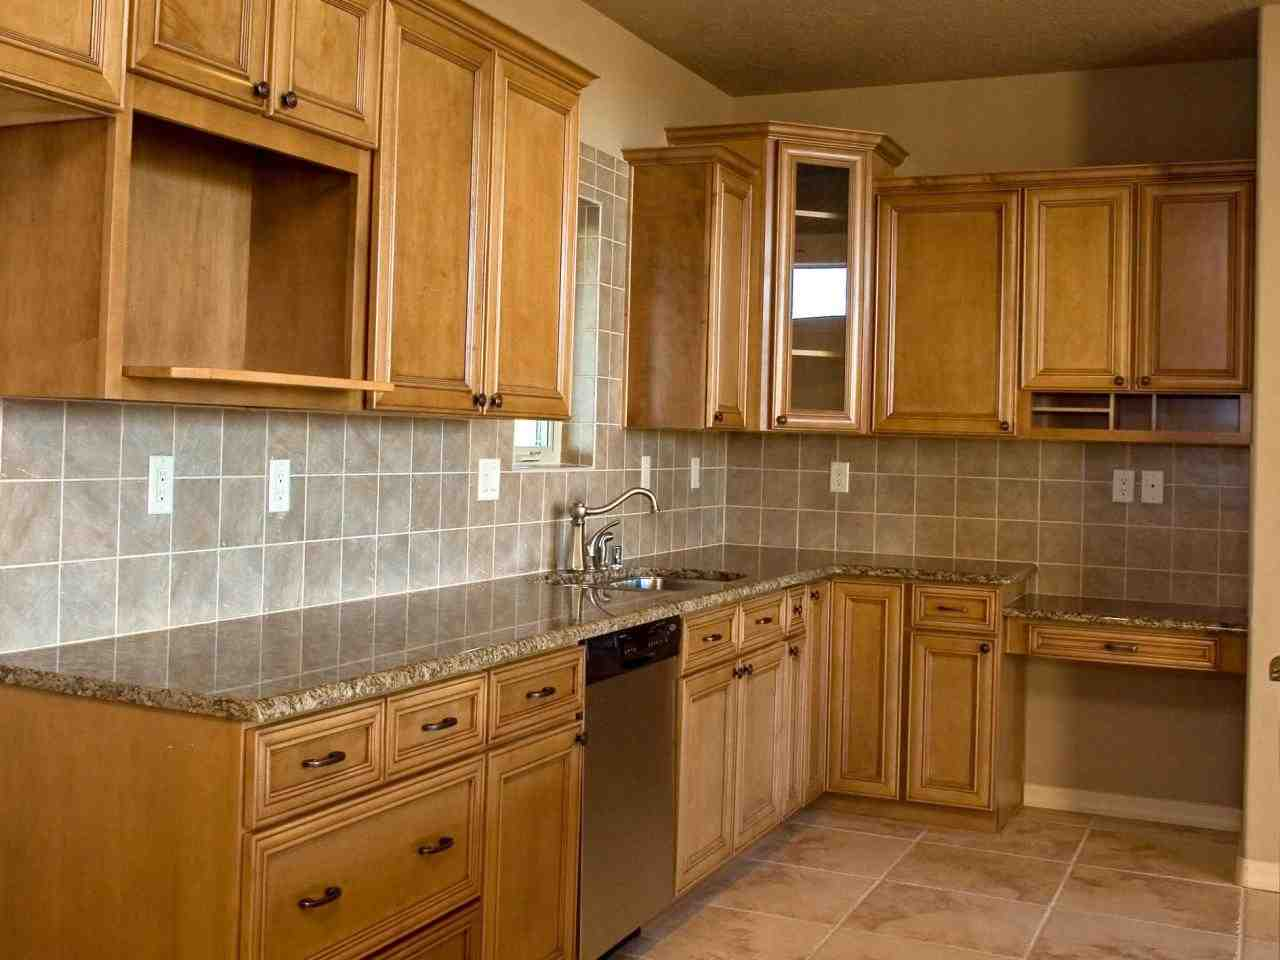 Unfinished oak kitchen cabinet doors decor ideasdecor ideas Kitchen cabinet door design ideas